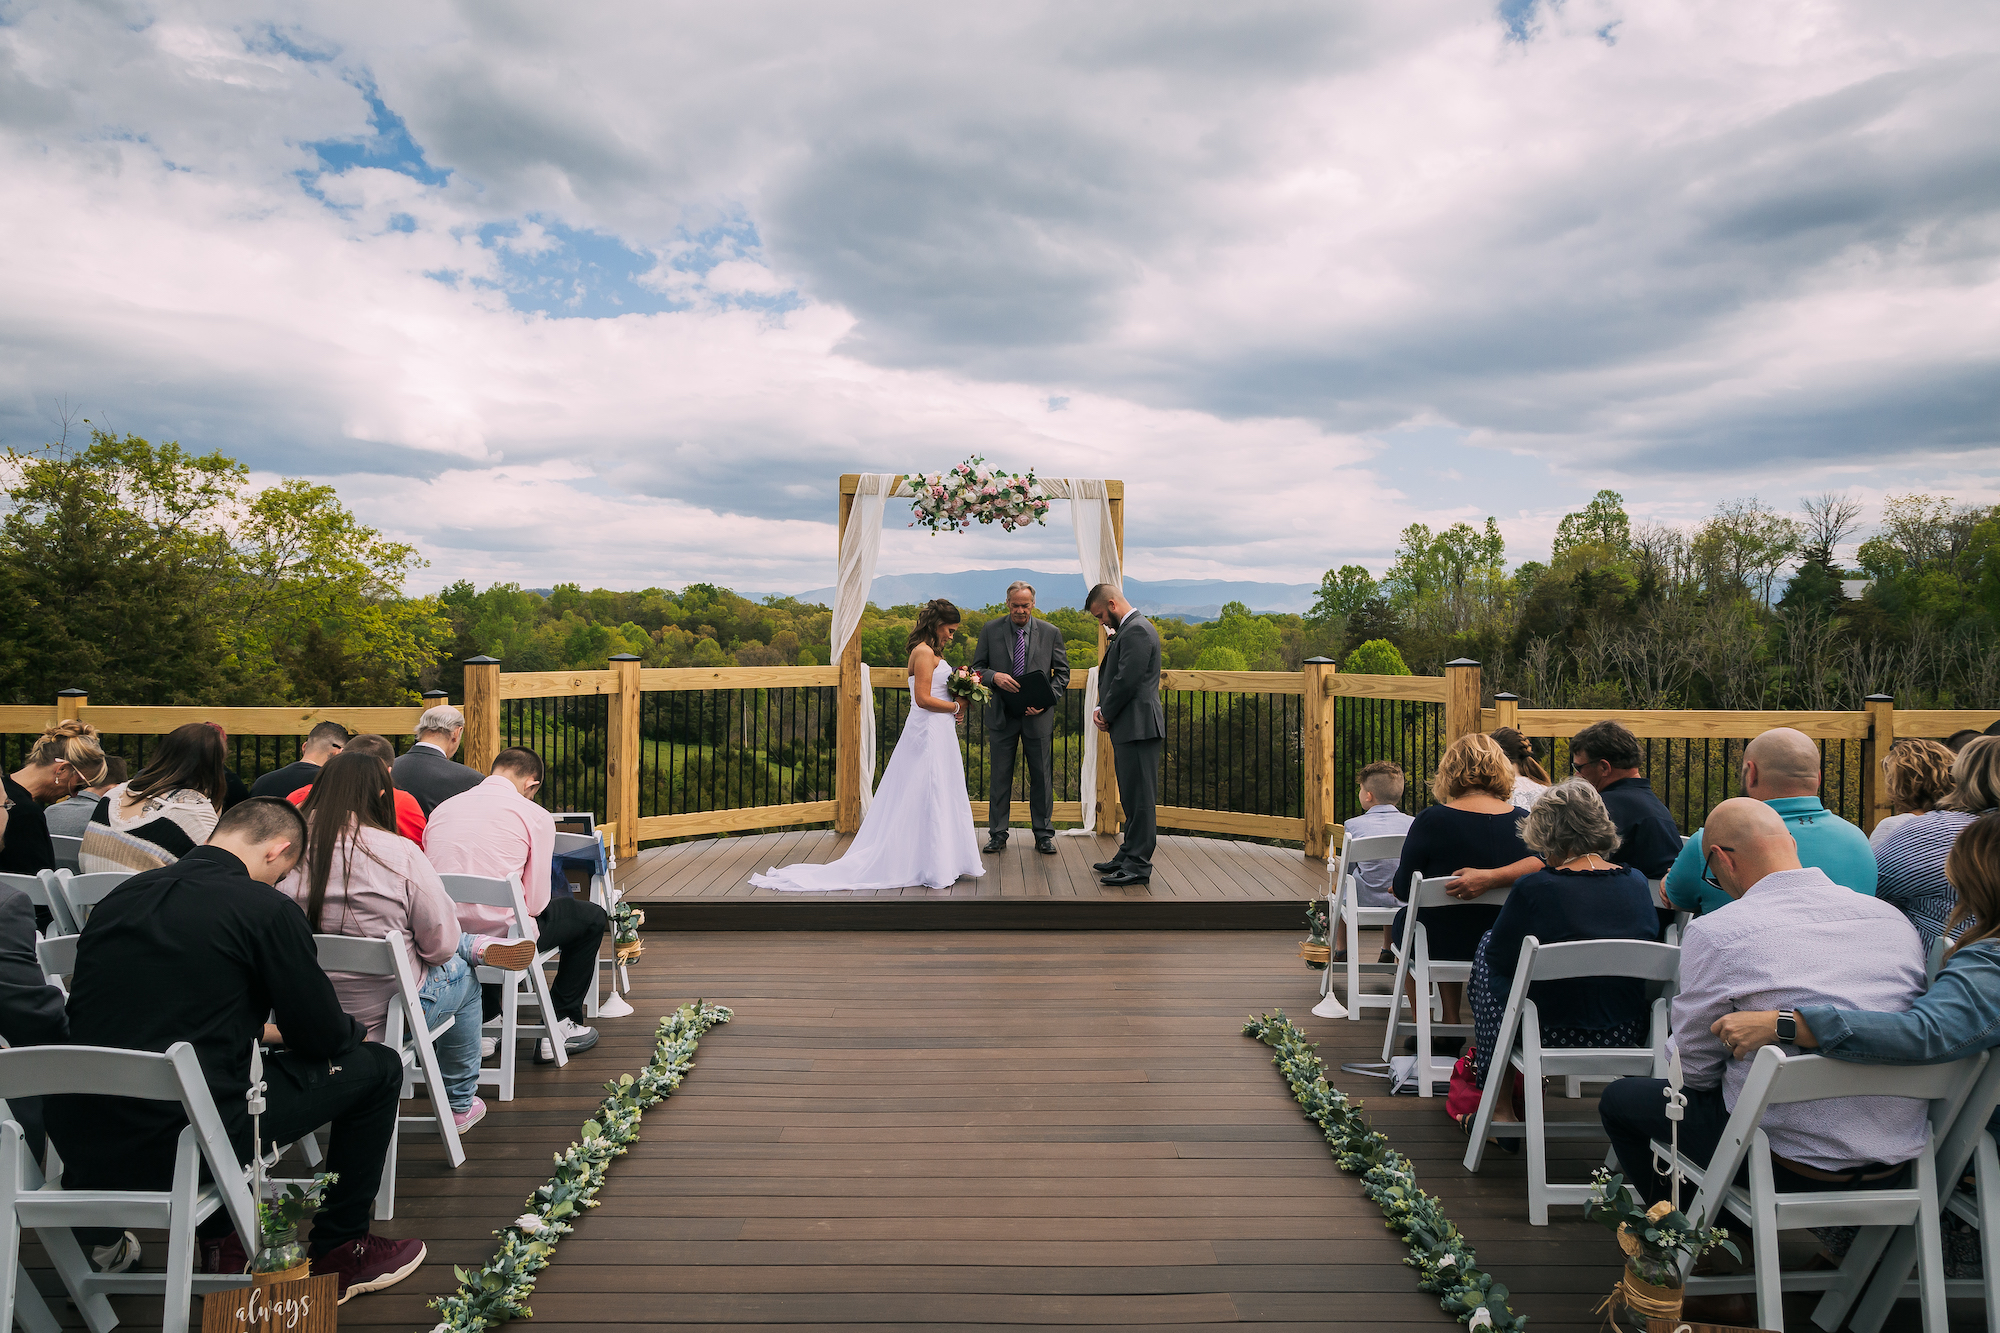 A couple getting married at flower mountain wedding venue